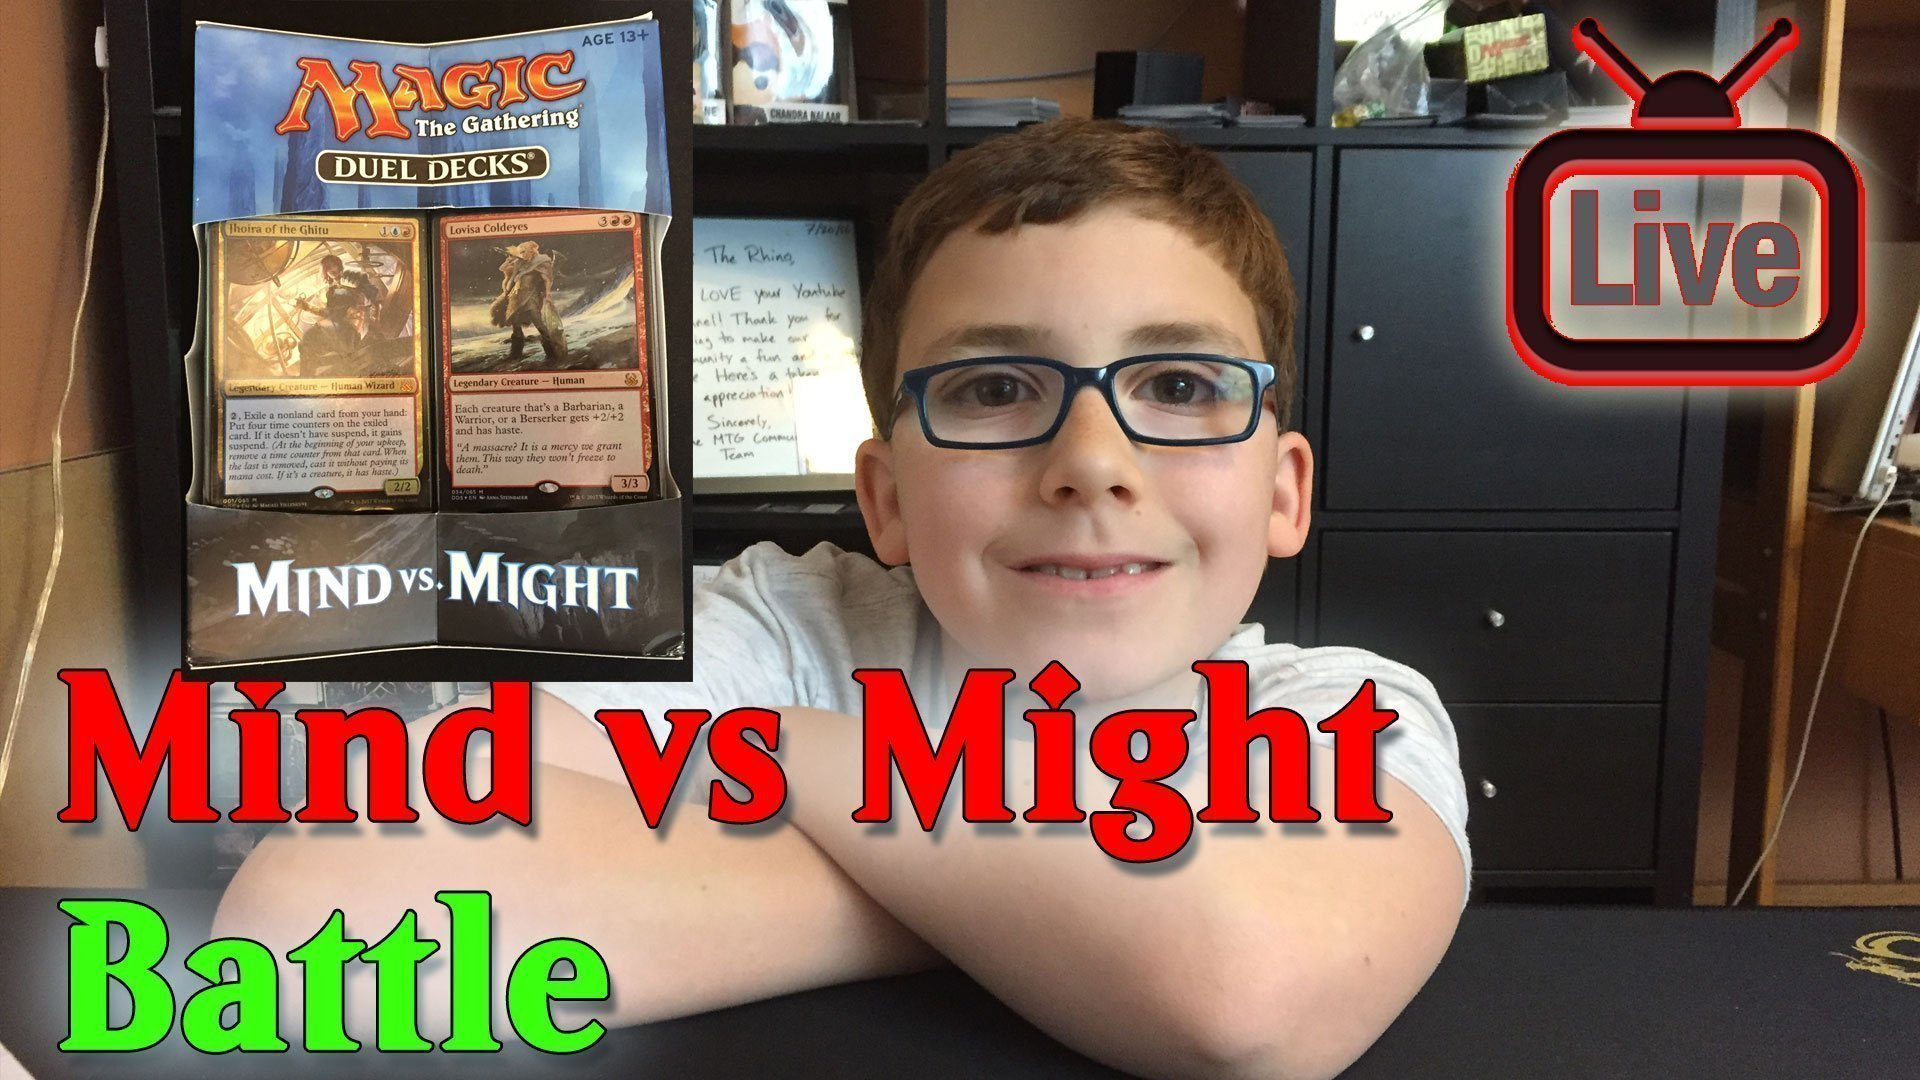 Magic the Gathering: Mind vs Might Game Play